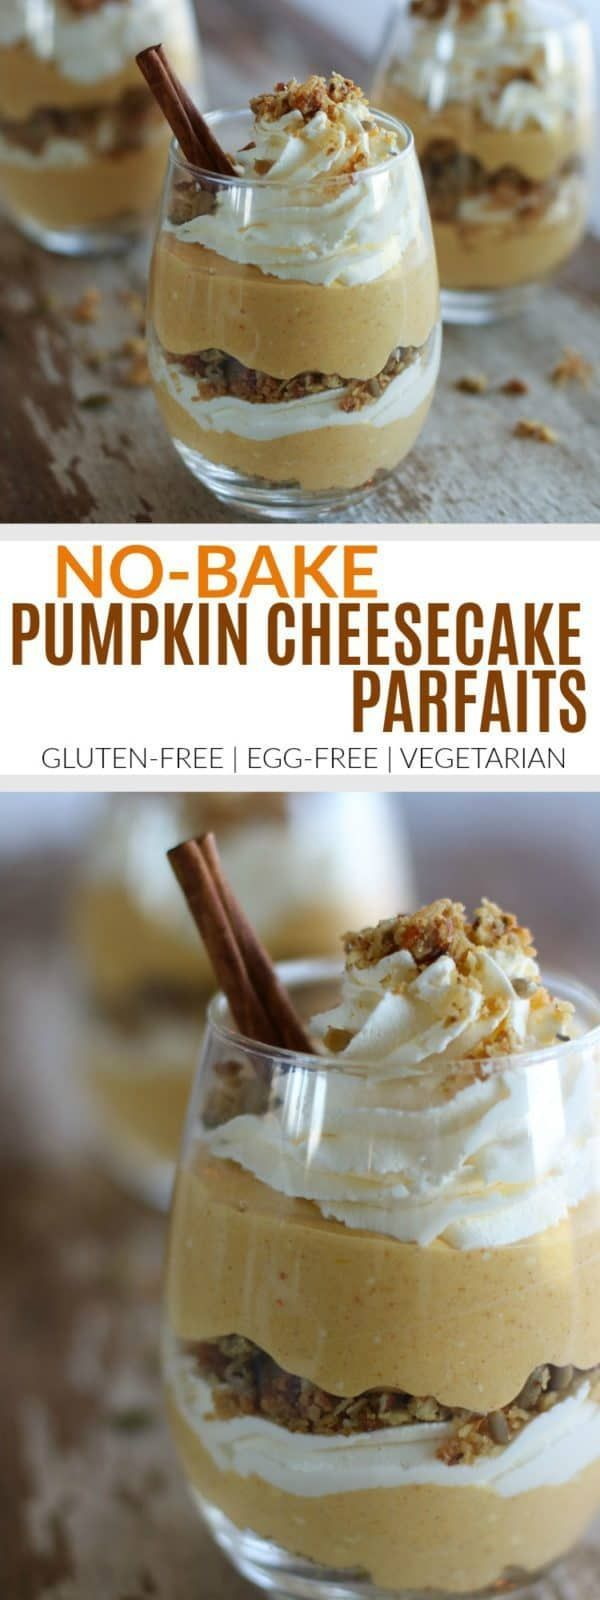 No-Bake Pumpkin Cheesecake Parfaits + Video #pumpkindesserts No-Bake Pumpkin Cheesecake Parfaits | Impress your guests this Holiday season with these …